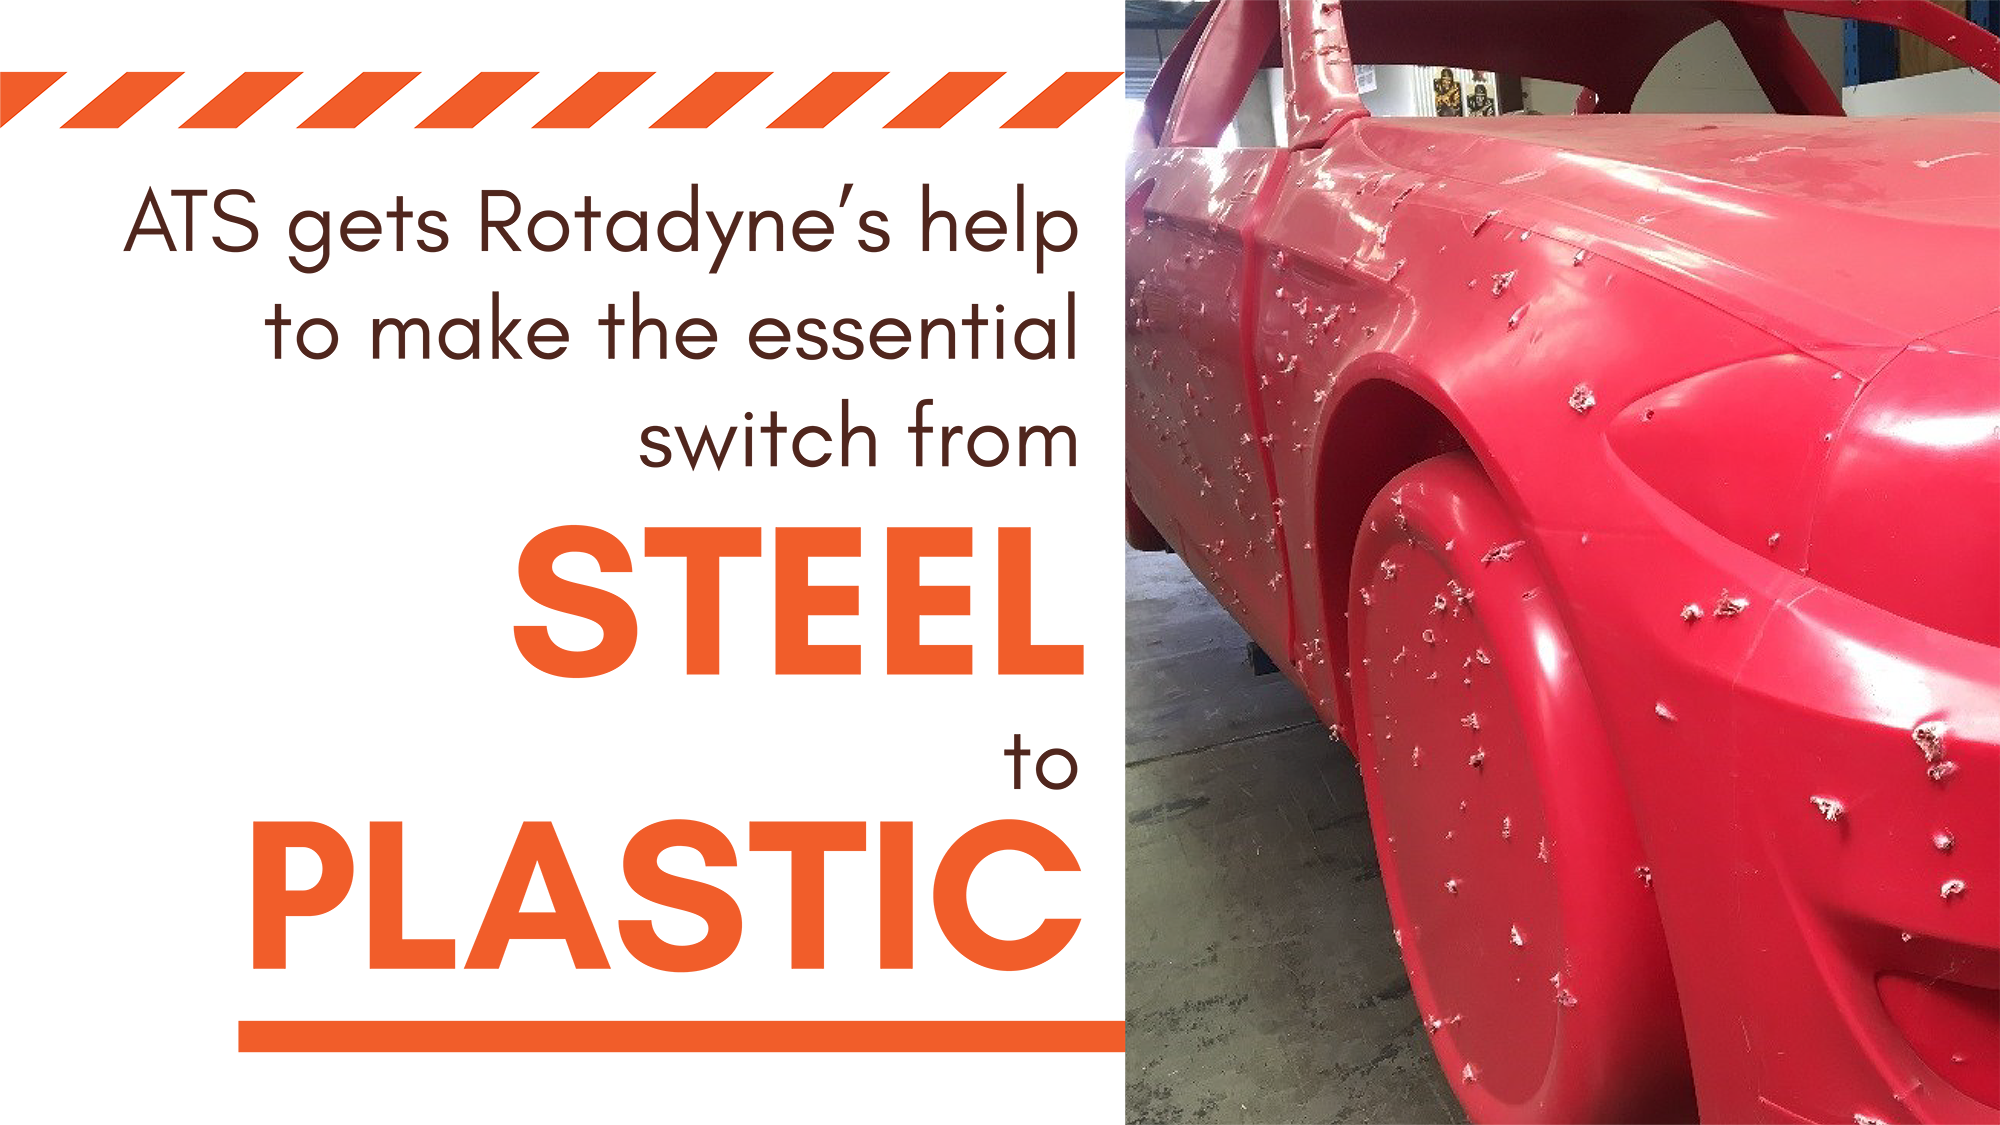 Car with bullet holes and text: ATS gets Rotadyne's help to make the essential switch from steel to plastic.